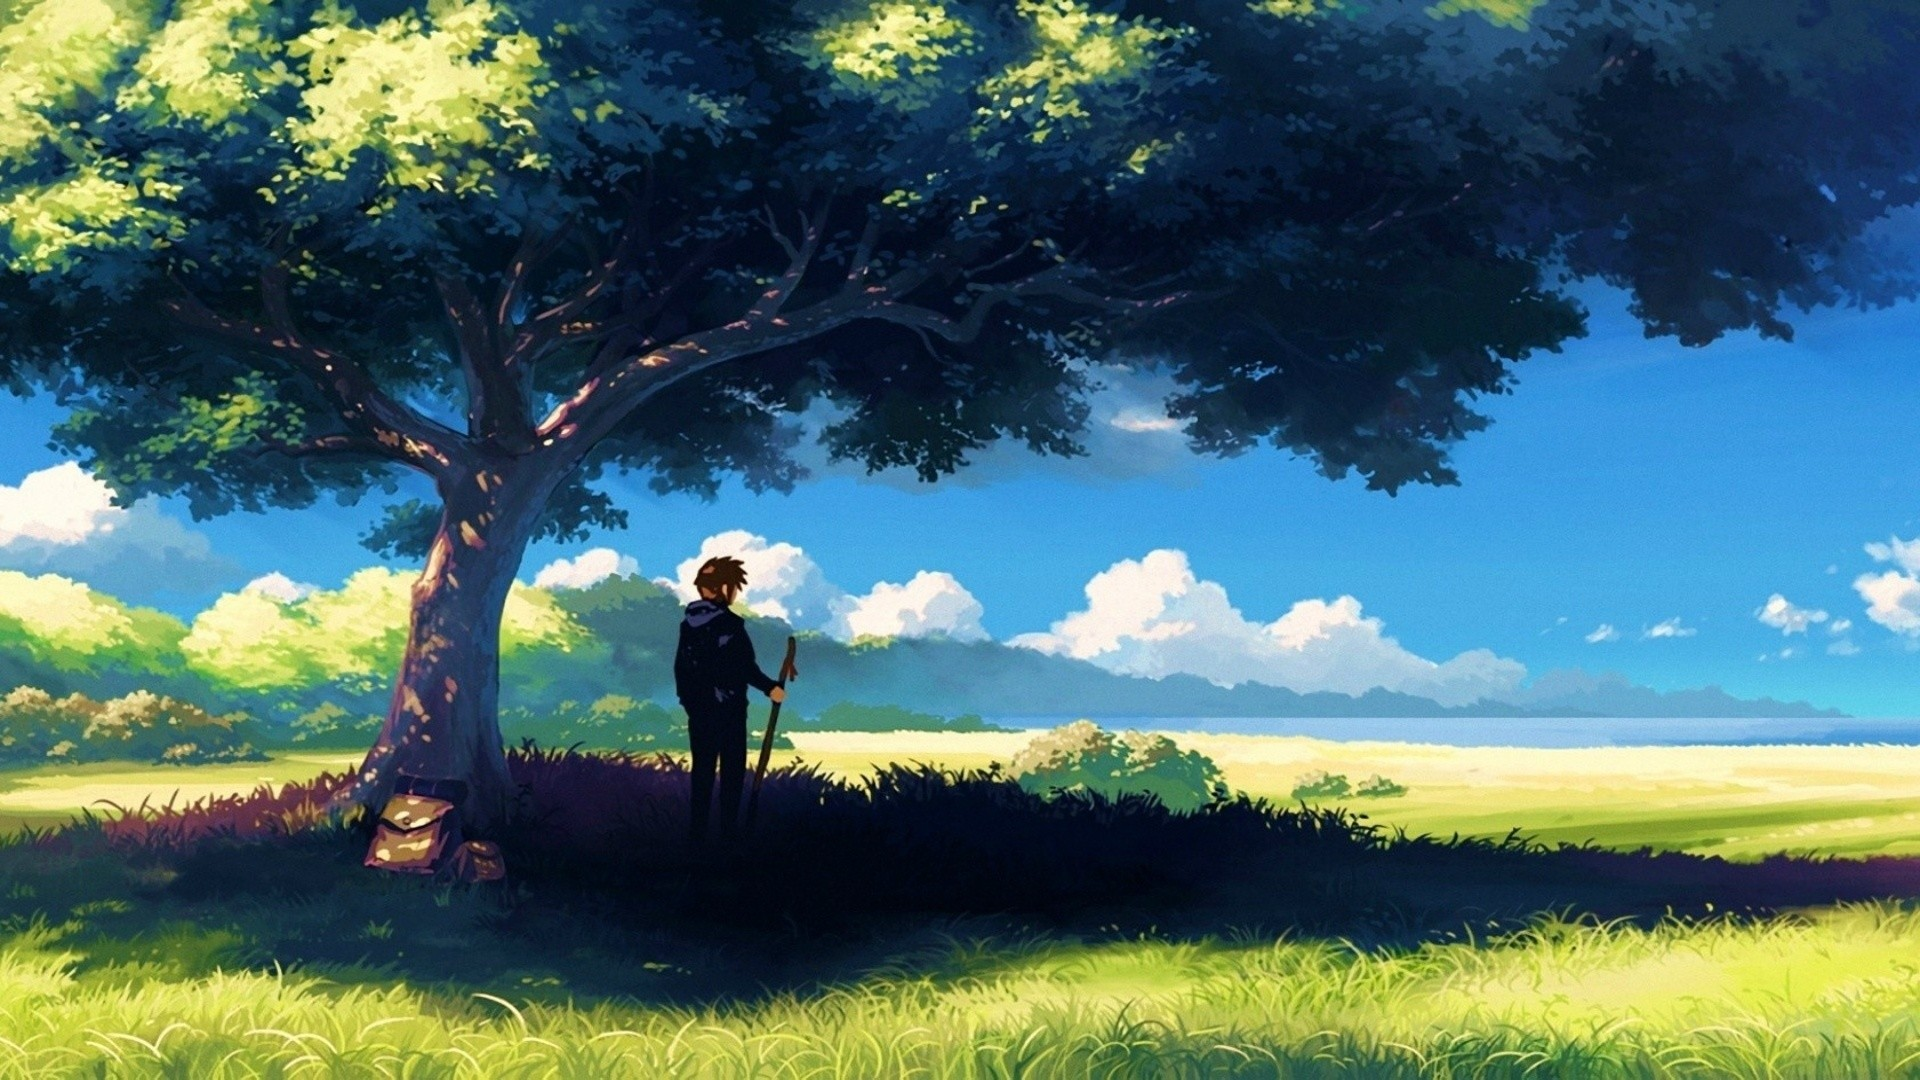 1920x1080  Anime, Scenery, Boy Under Tree, Anime Scenery Wallpapers .